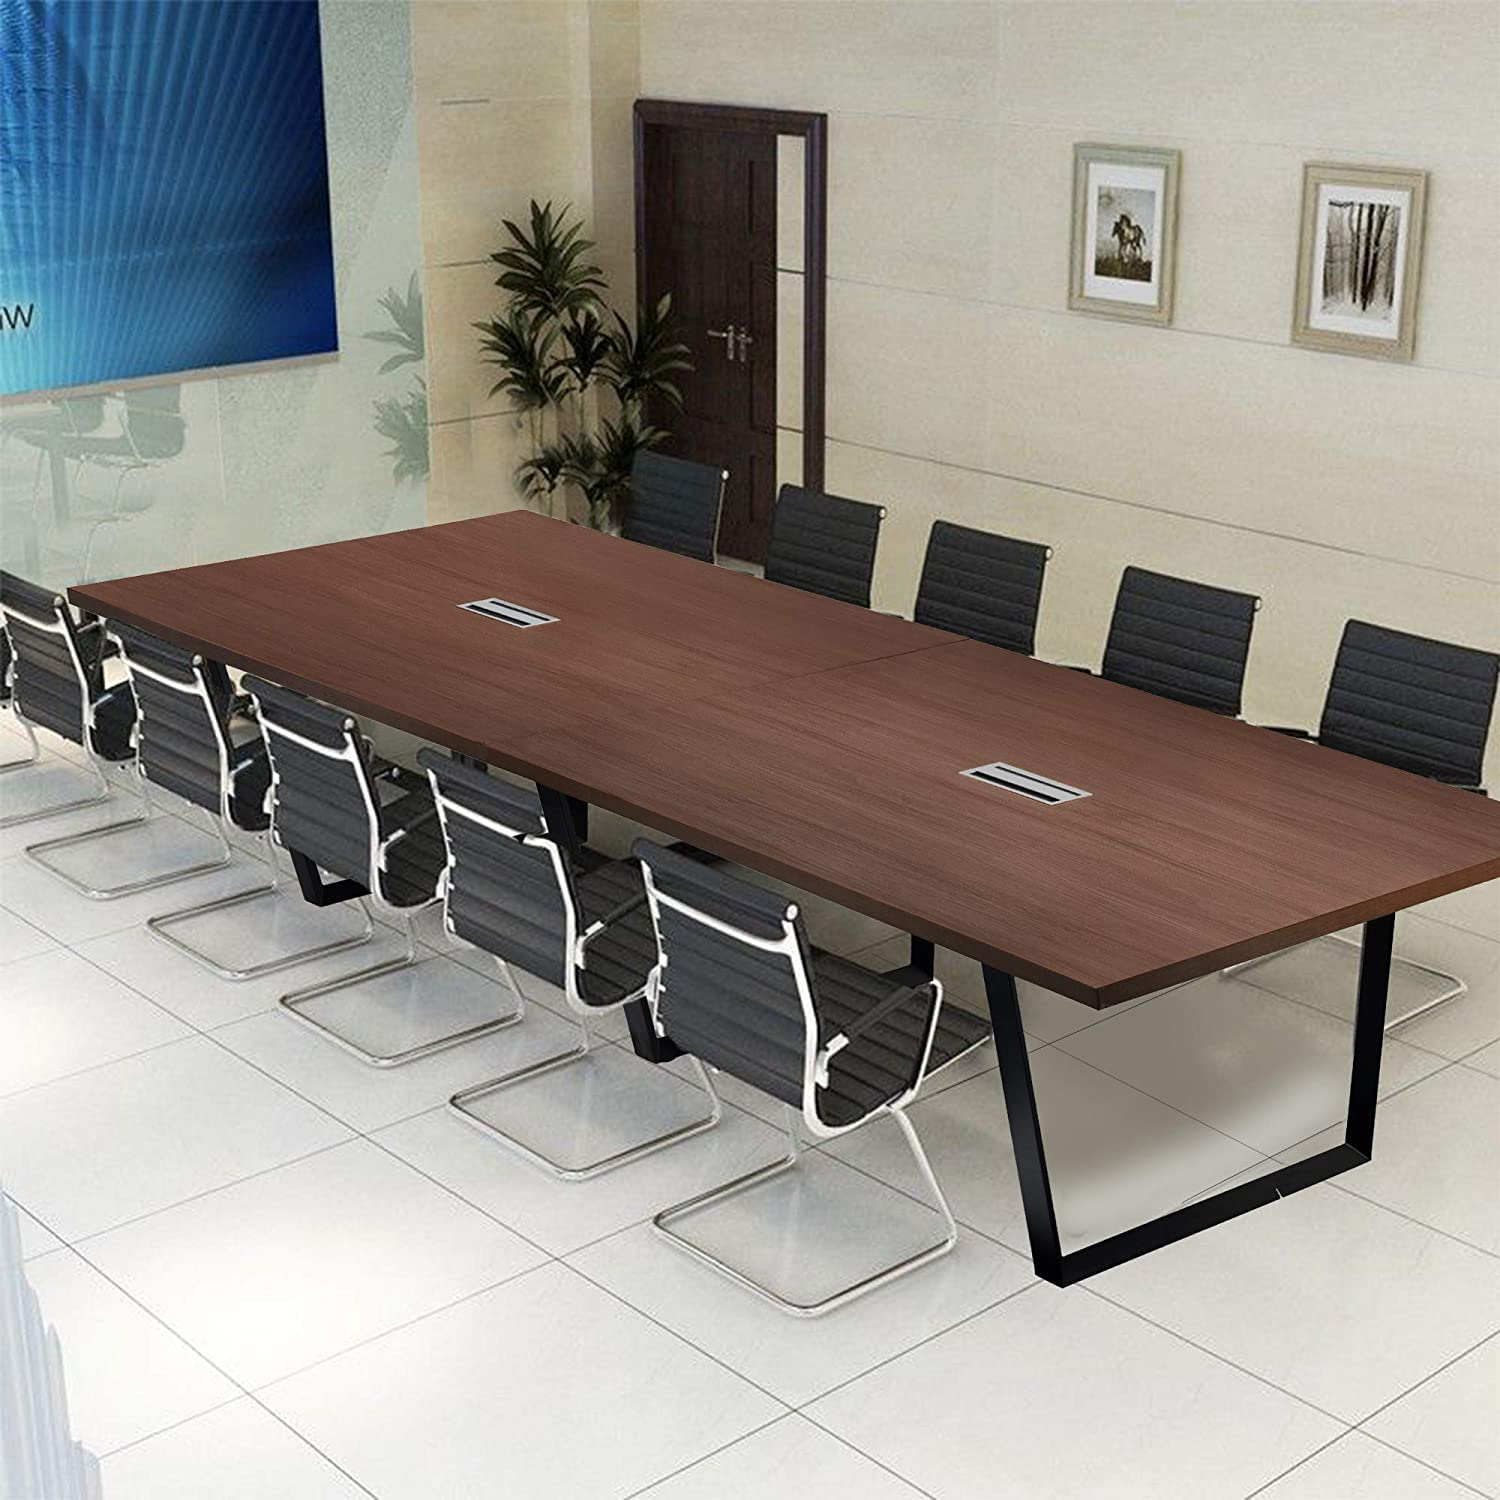 Modern Stylish Boardroom Desk with Metal Frame /& Legs 12 Foot Conference Room Table Easy-to-Assemble Meeting Room Table Keeps Your Cables /& Wires Hidden